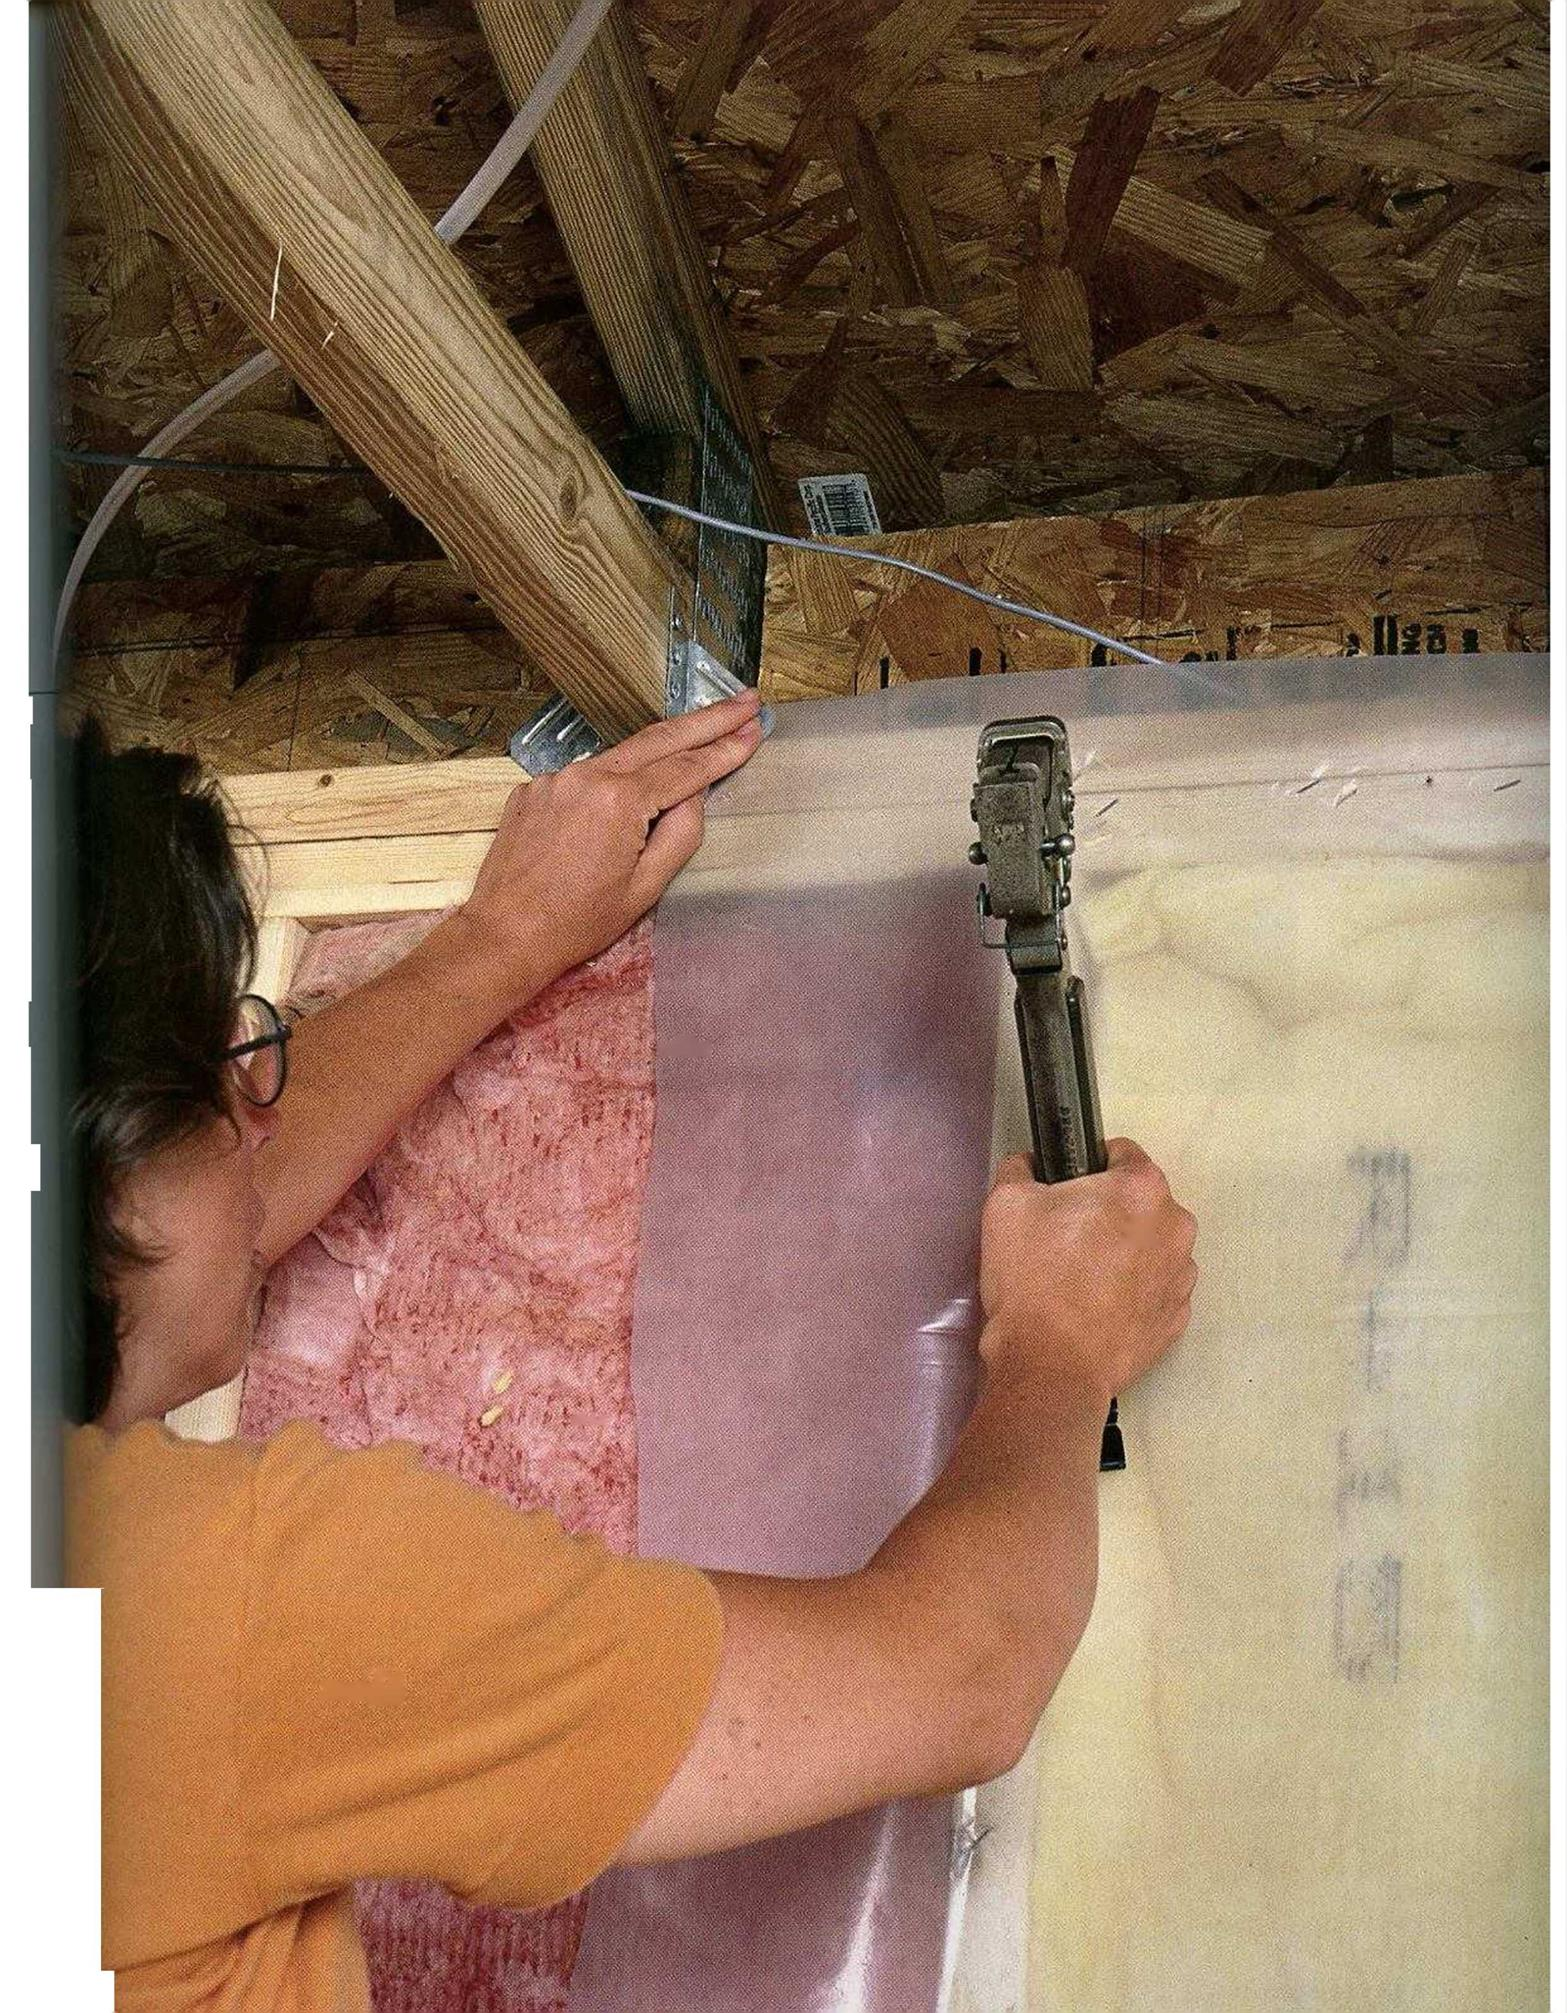 Sealing, Insulating, and Ventilating a House